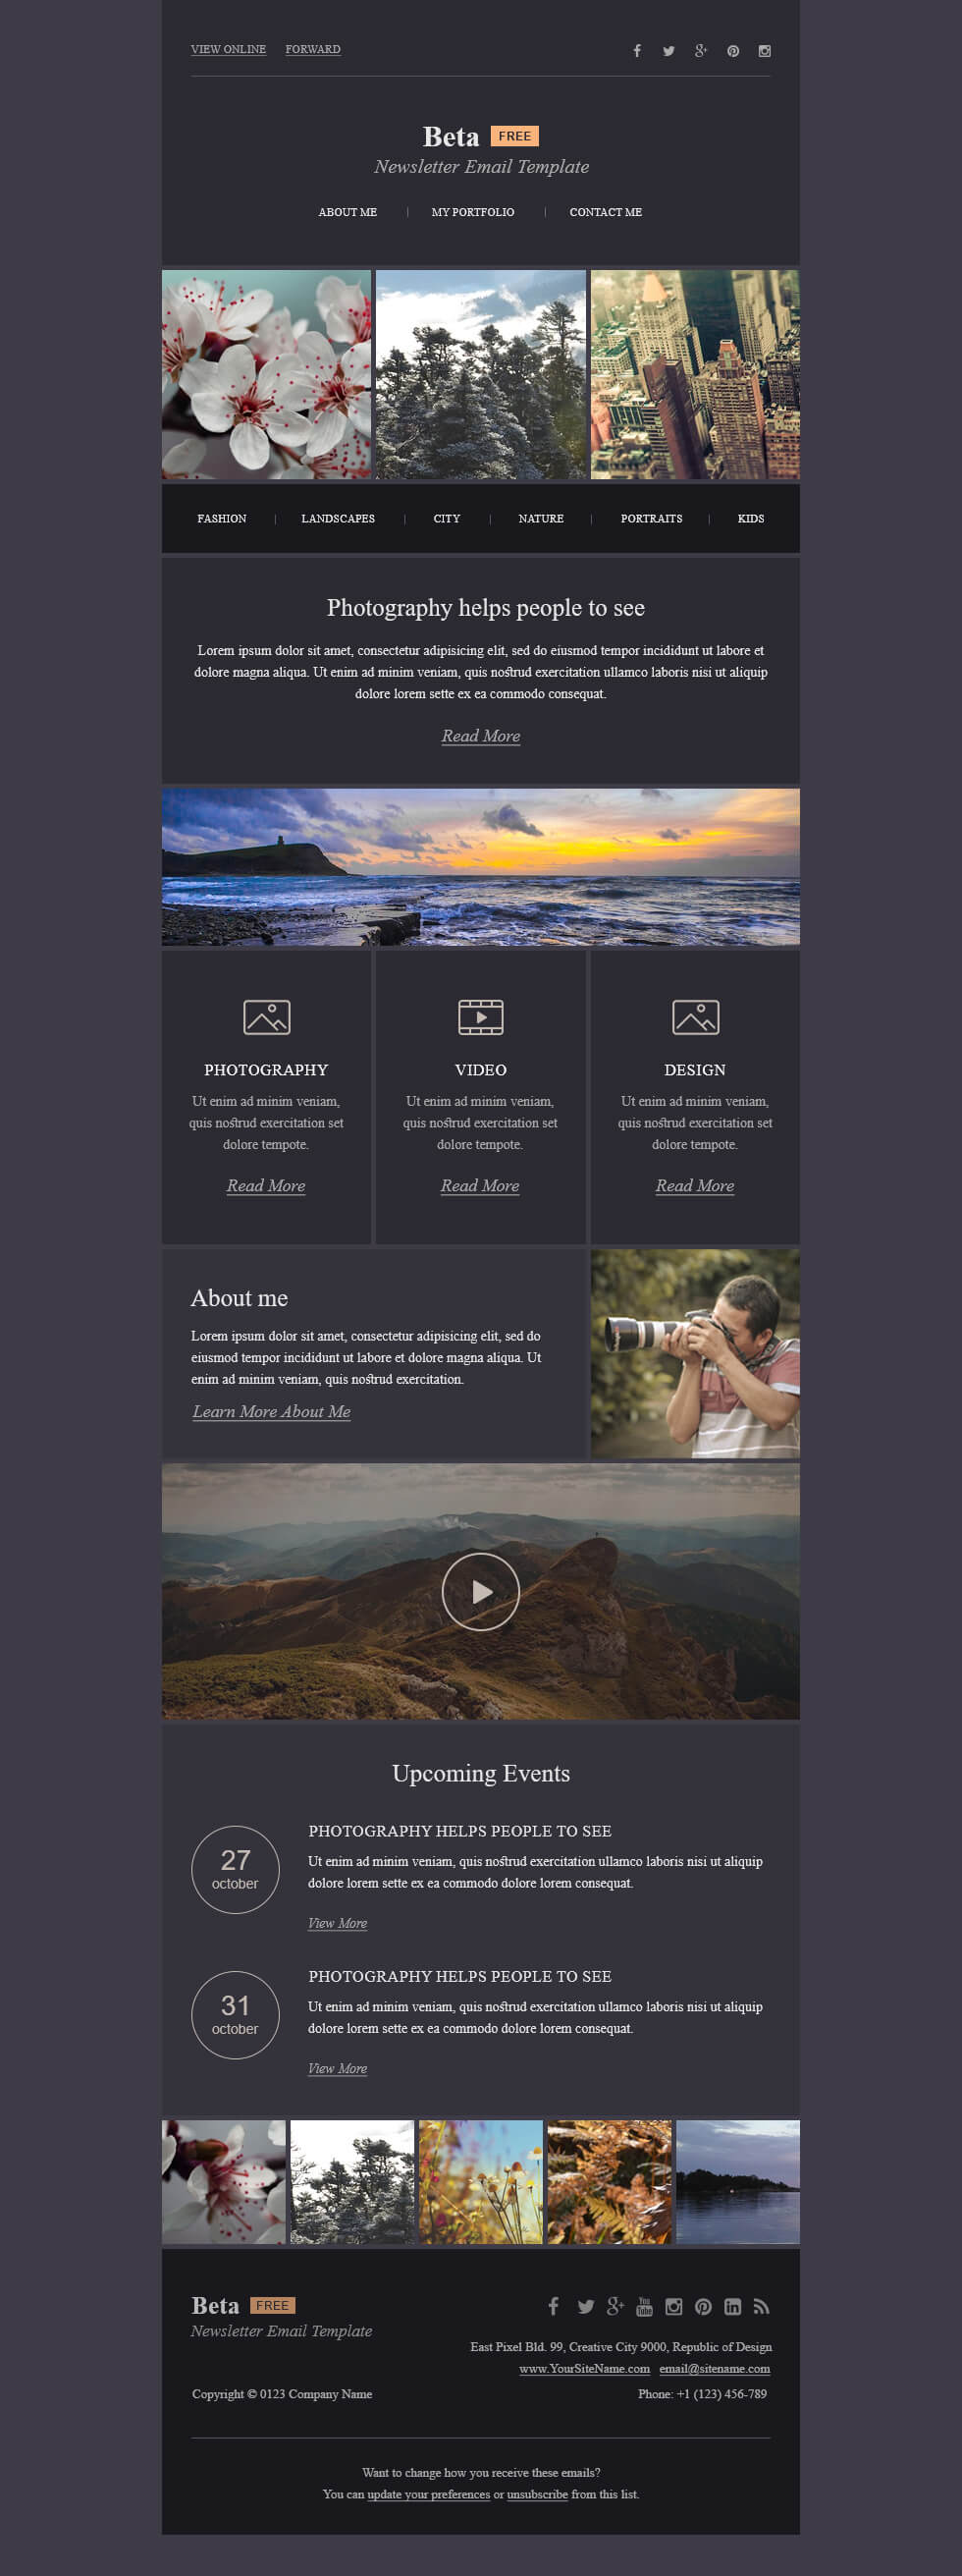 Mailbakery Beta - Free HTML Email Template - Free PSD Files